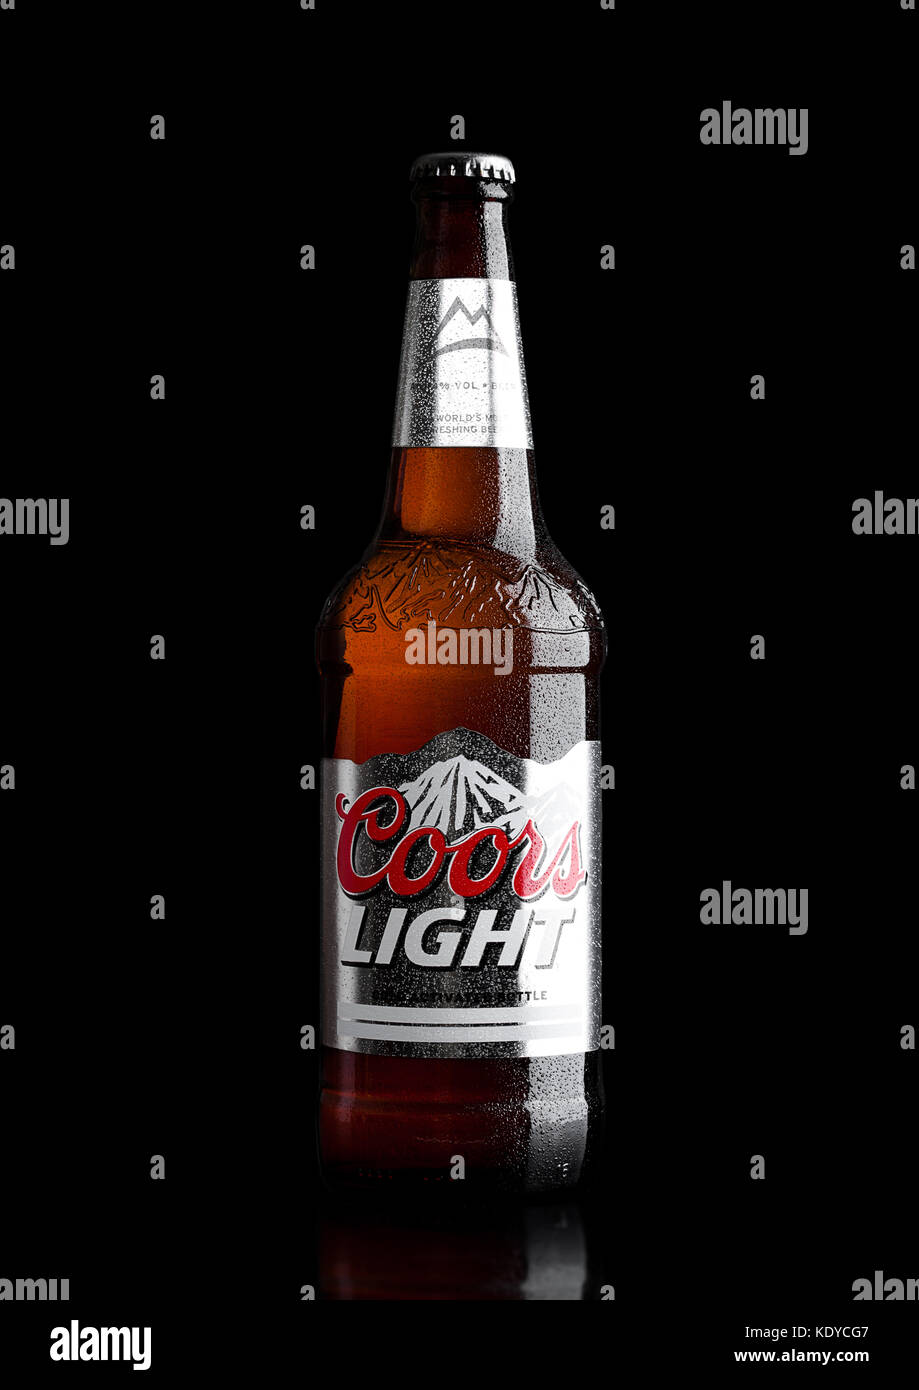 Londonuk march 30 2017 bottle of coors light beer on stock londonuk march 30 2017 bottle of coors light beer on blackbackground coors operates a brewery in golden colorado that is the largest single b aloadofball Images